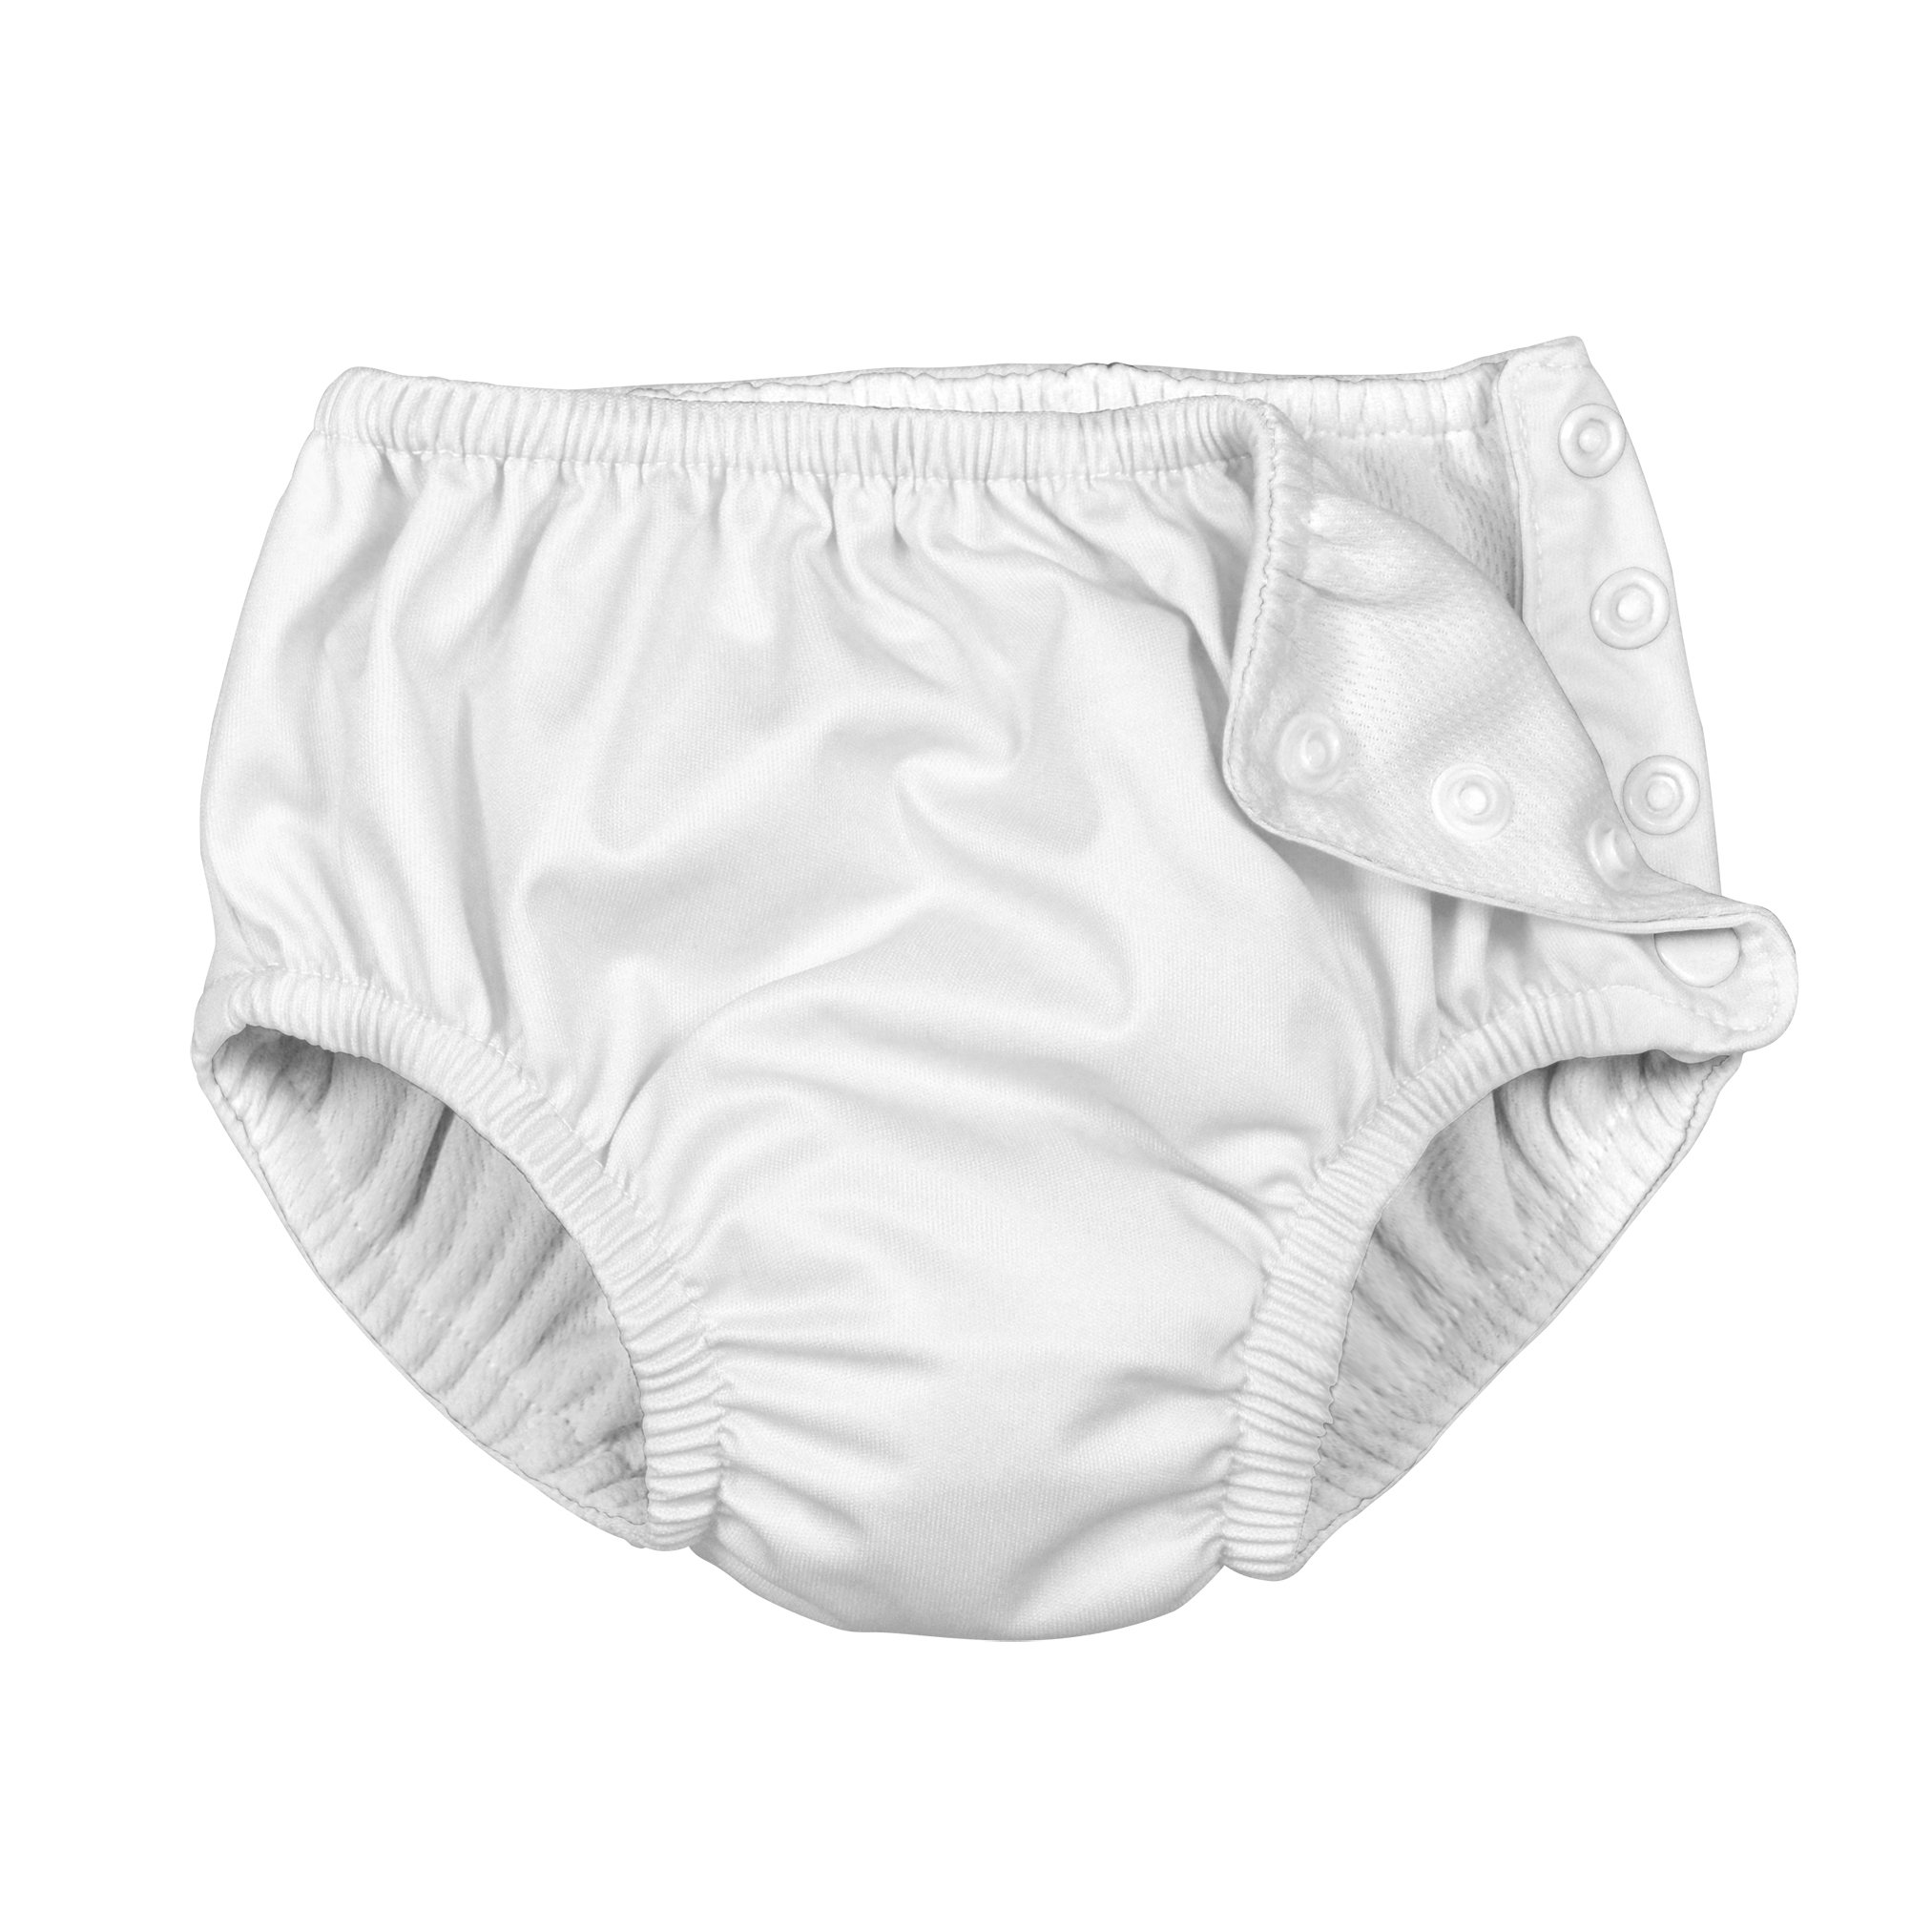 i play. Snap Reusable Swimsuit Diaper, 24 Months by i play.